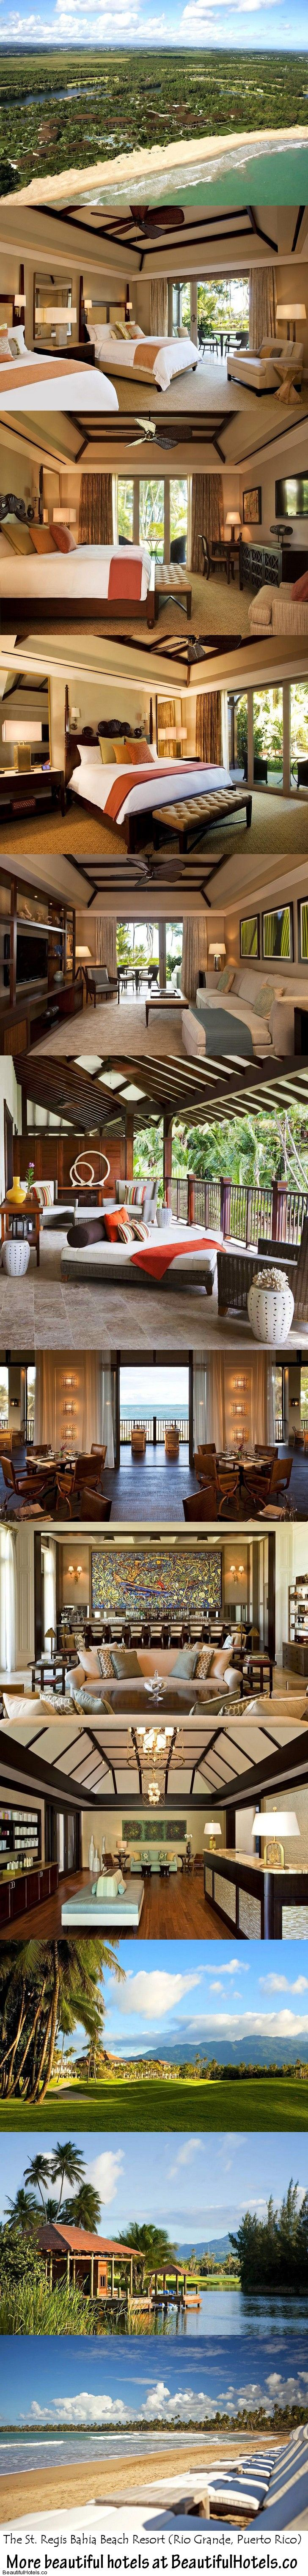 The St. Regis Bahia Beach Resort (Rio Grande, Puerto Rico) - keeping this in mind for our annual trip to Puerto Rico!